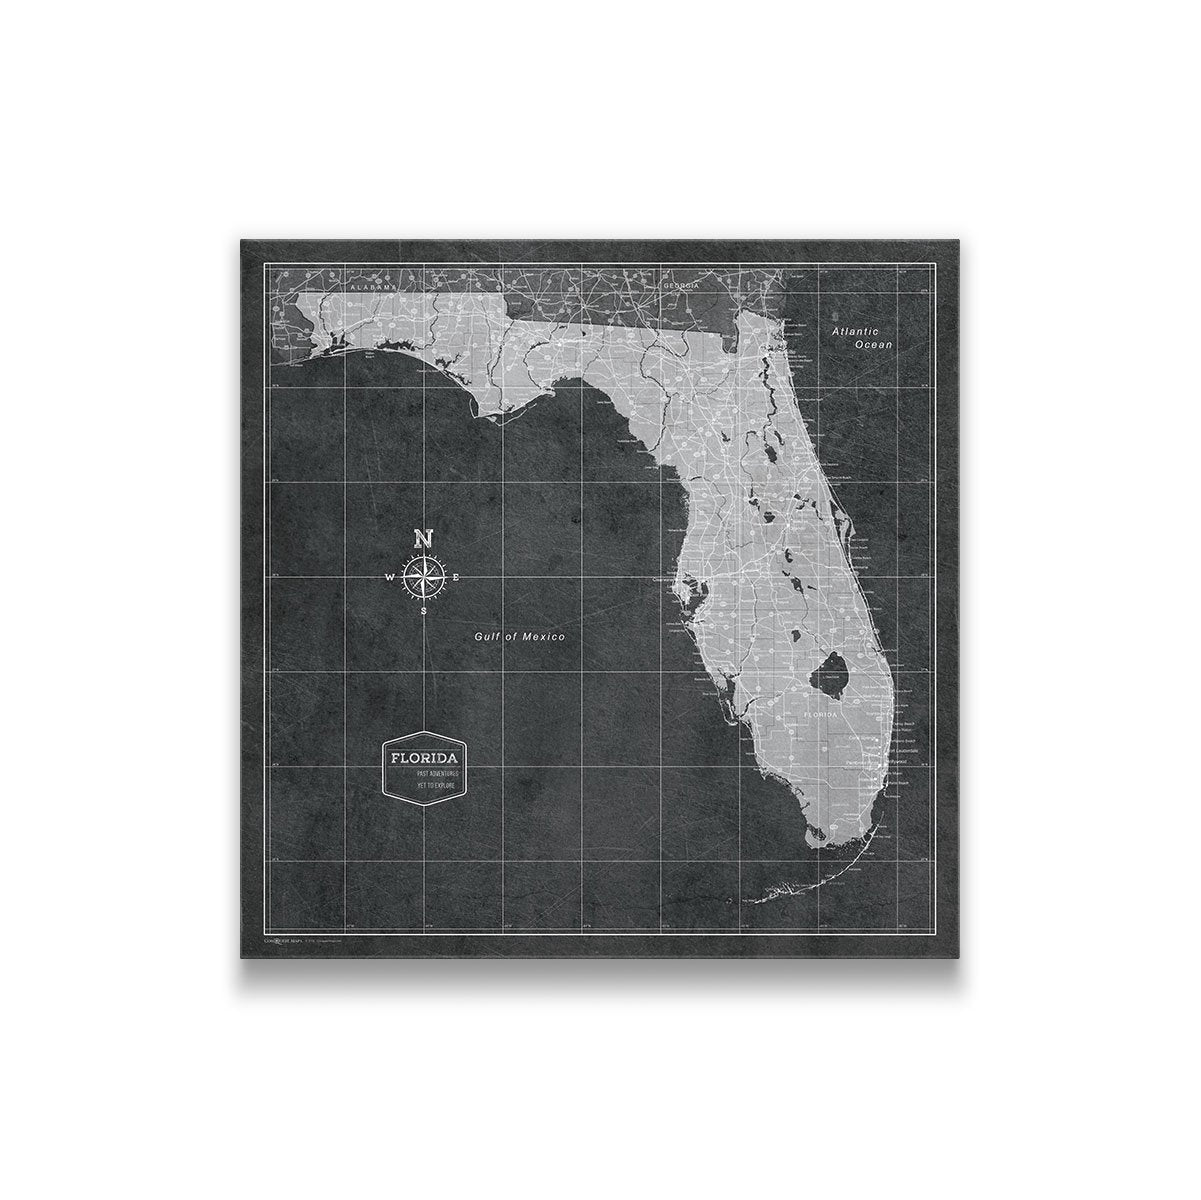 Florida State Map.Florida Travel Map Pin Board W Push Pins Modern Slate